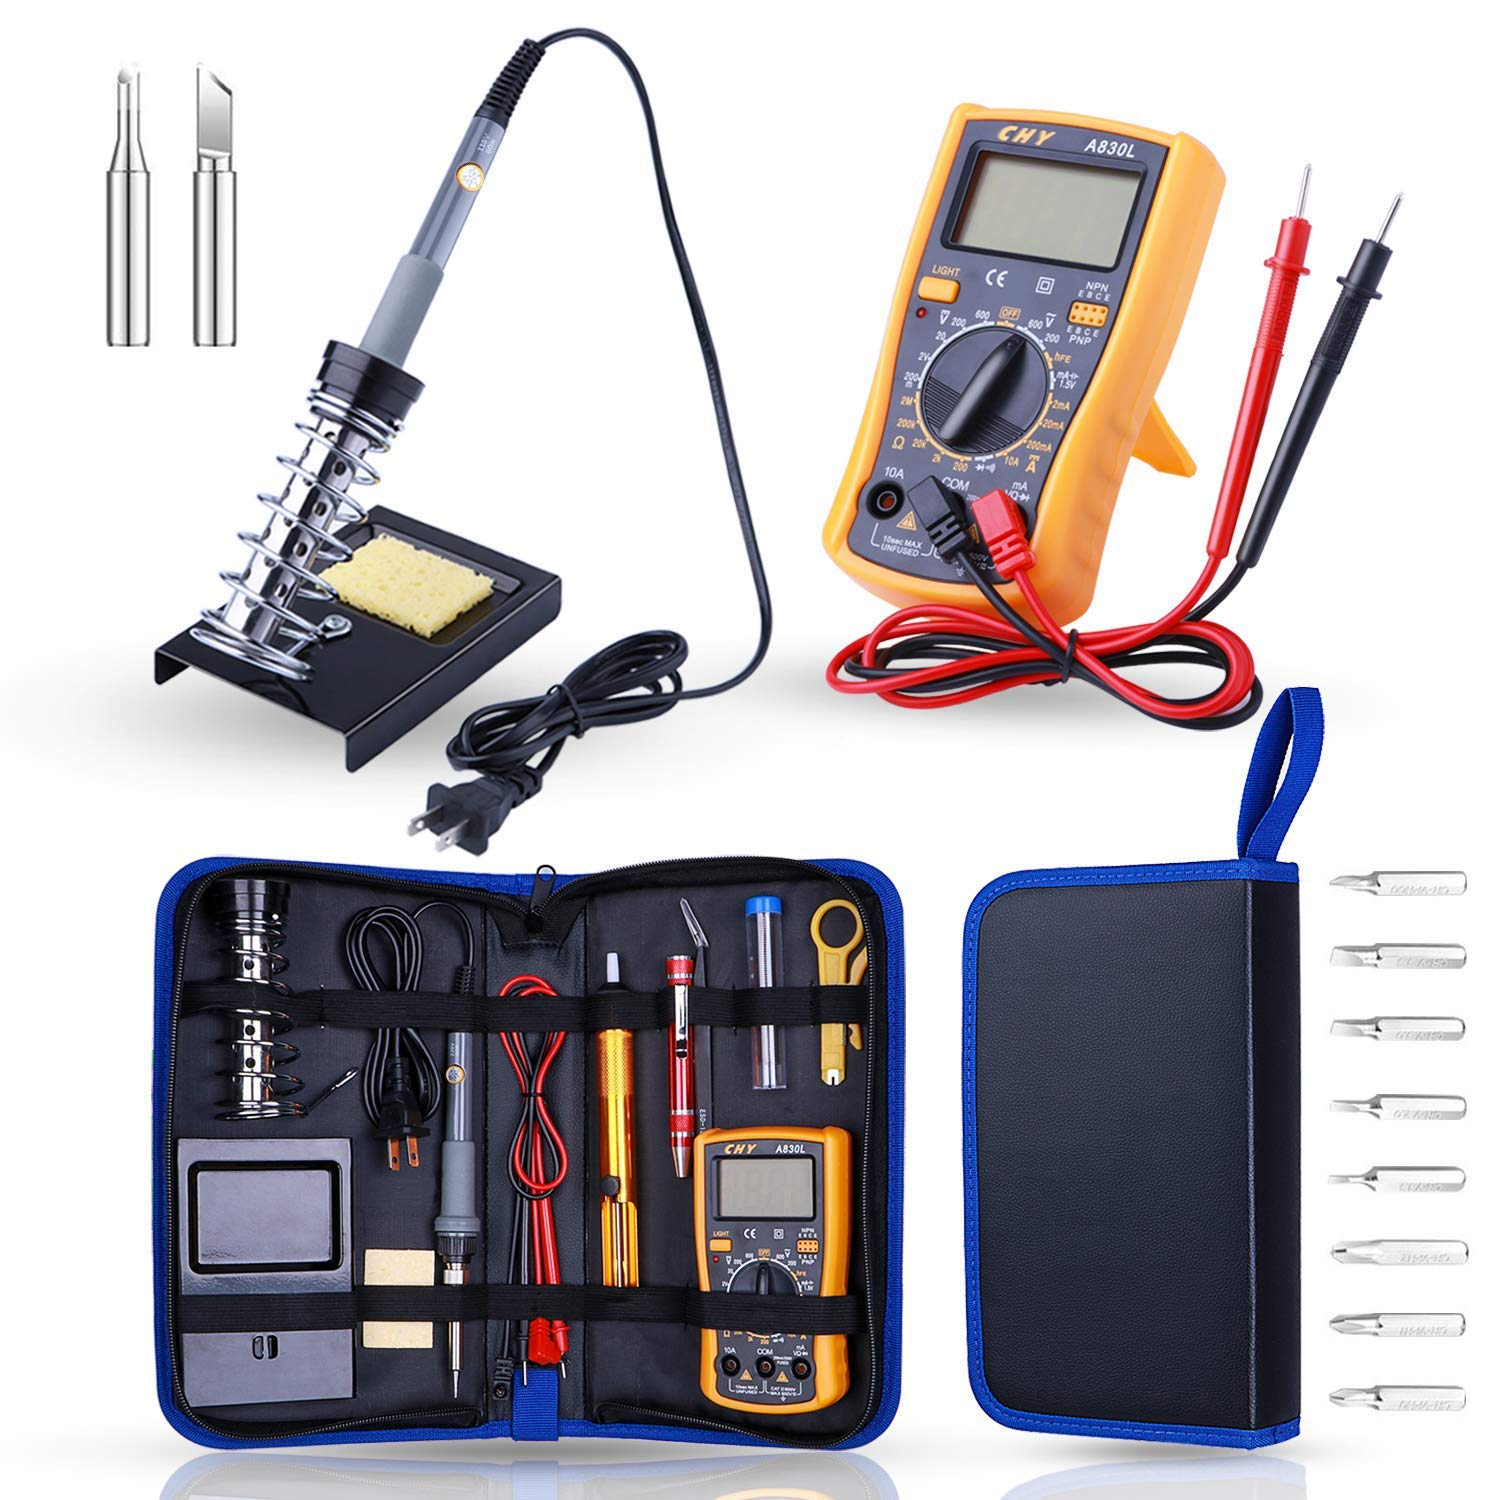 Soldering Iron Kit Electronics Rarlight 60W Adjustable Temperature Welding Tool Digital Multimeter Soldering Iron Tips Desoldering Pump Screwdriver Solder Wire Tweezers Stand Wire Stripper Cutter